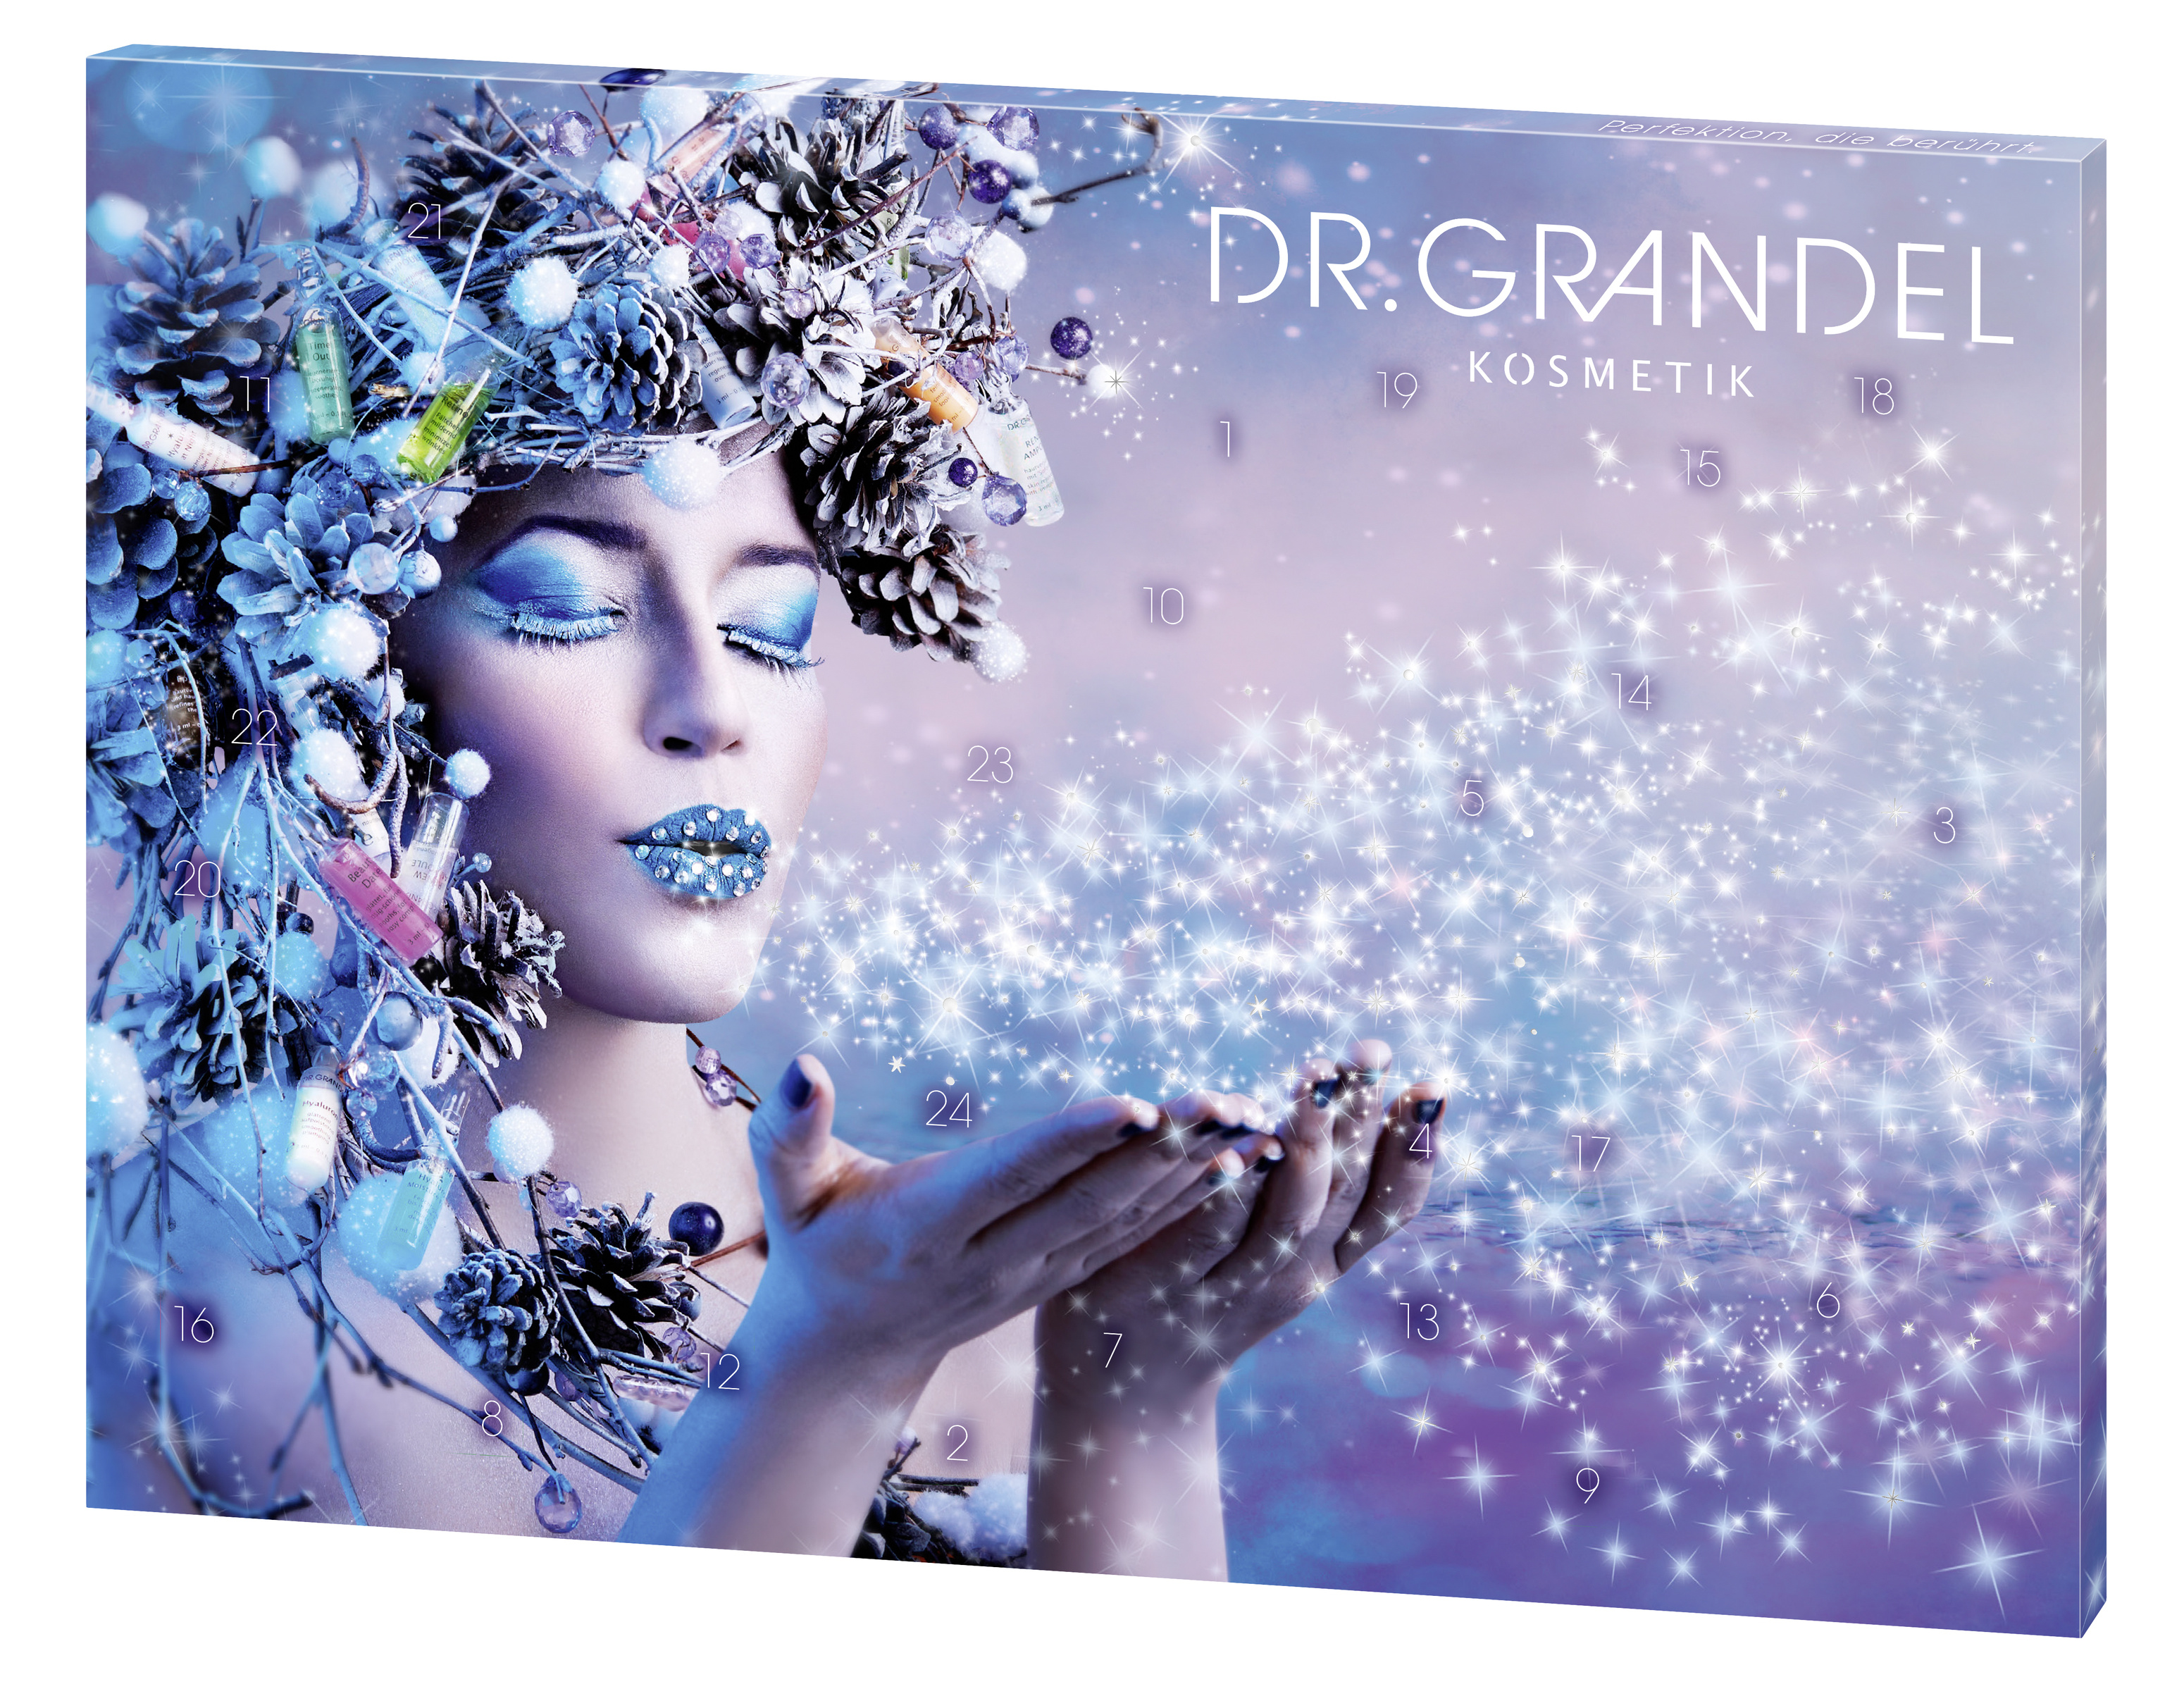 Beauty Adventskalender 2019: Dr. Grandel Adventskalender